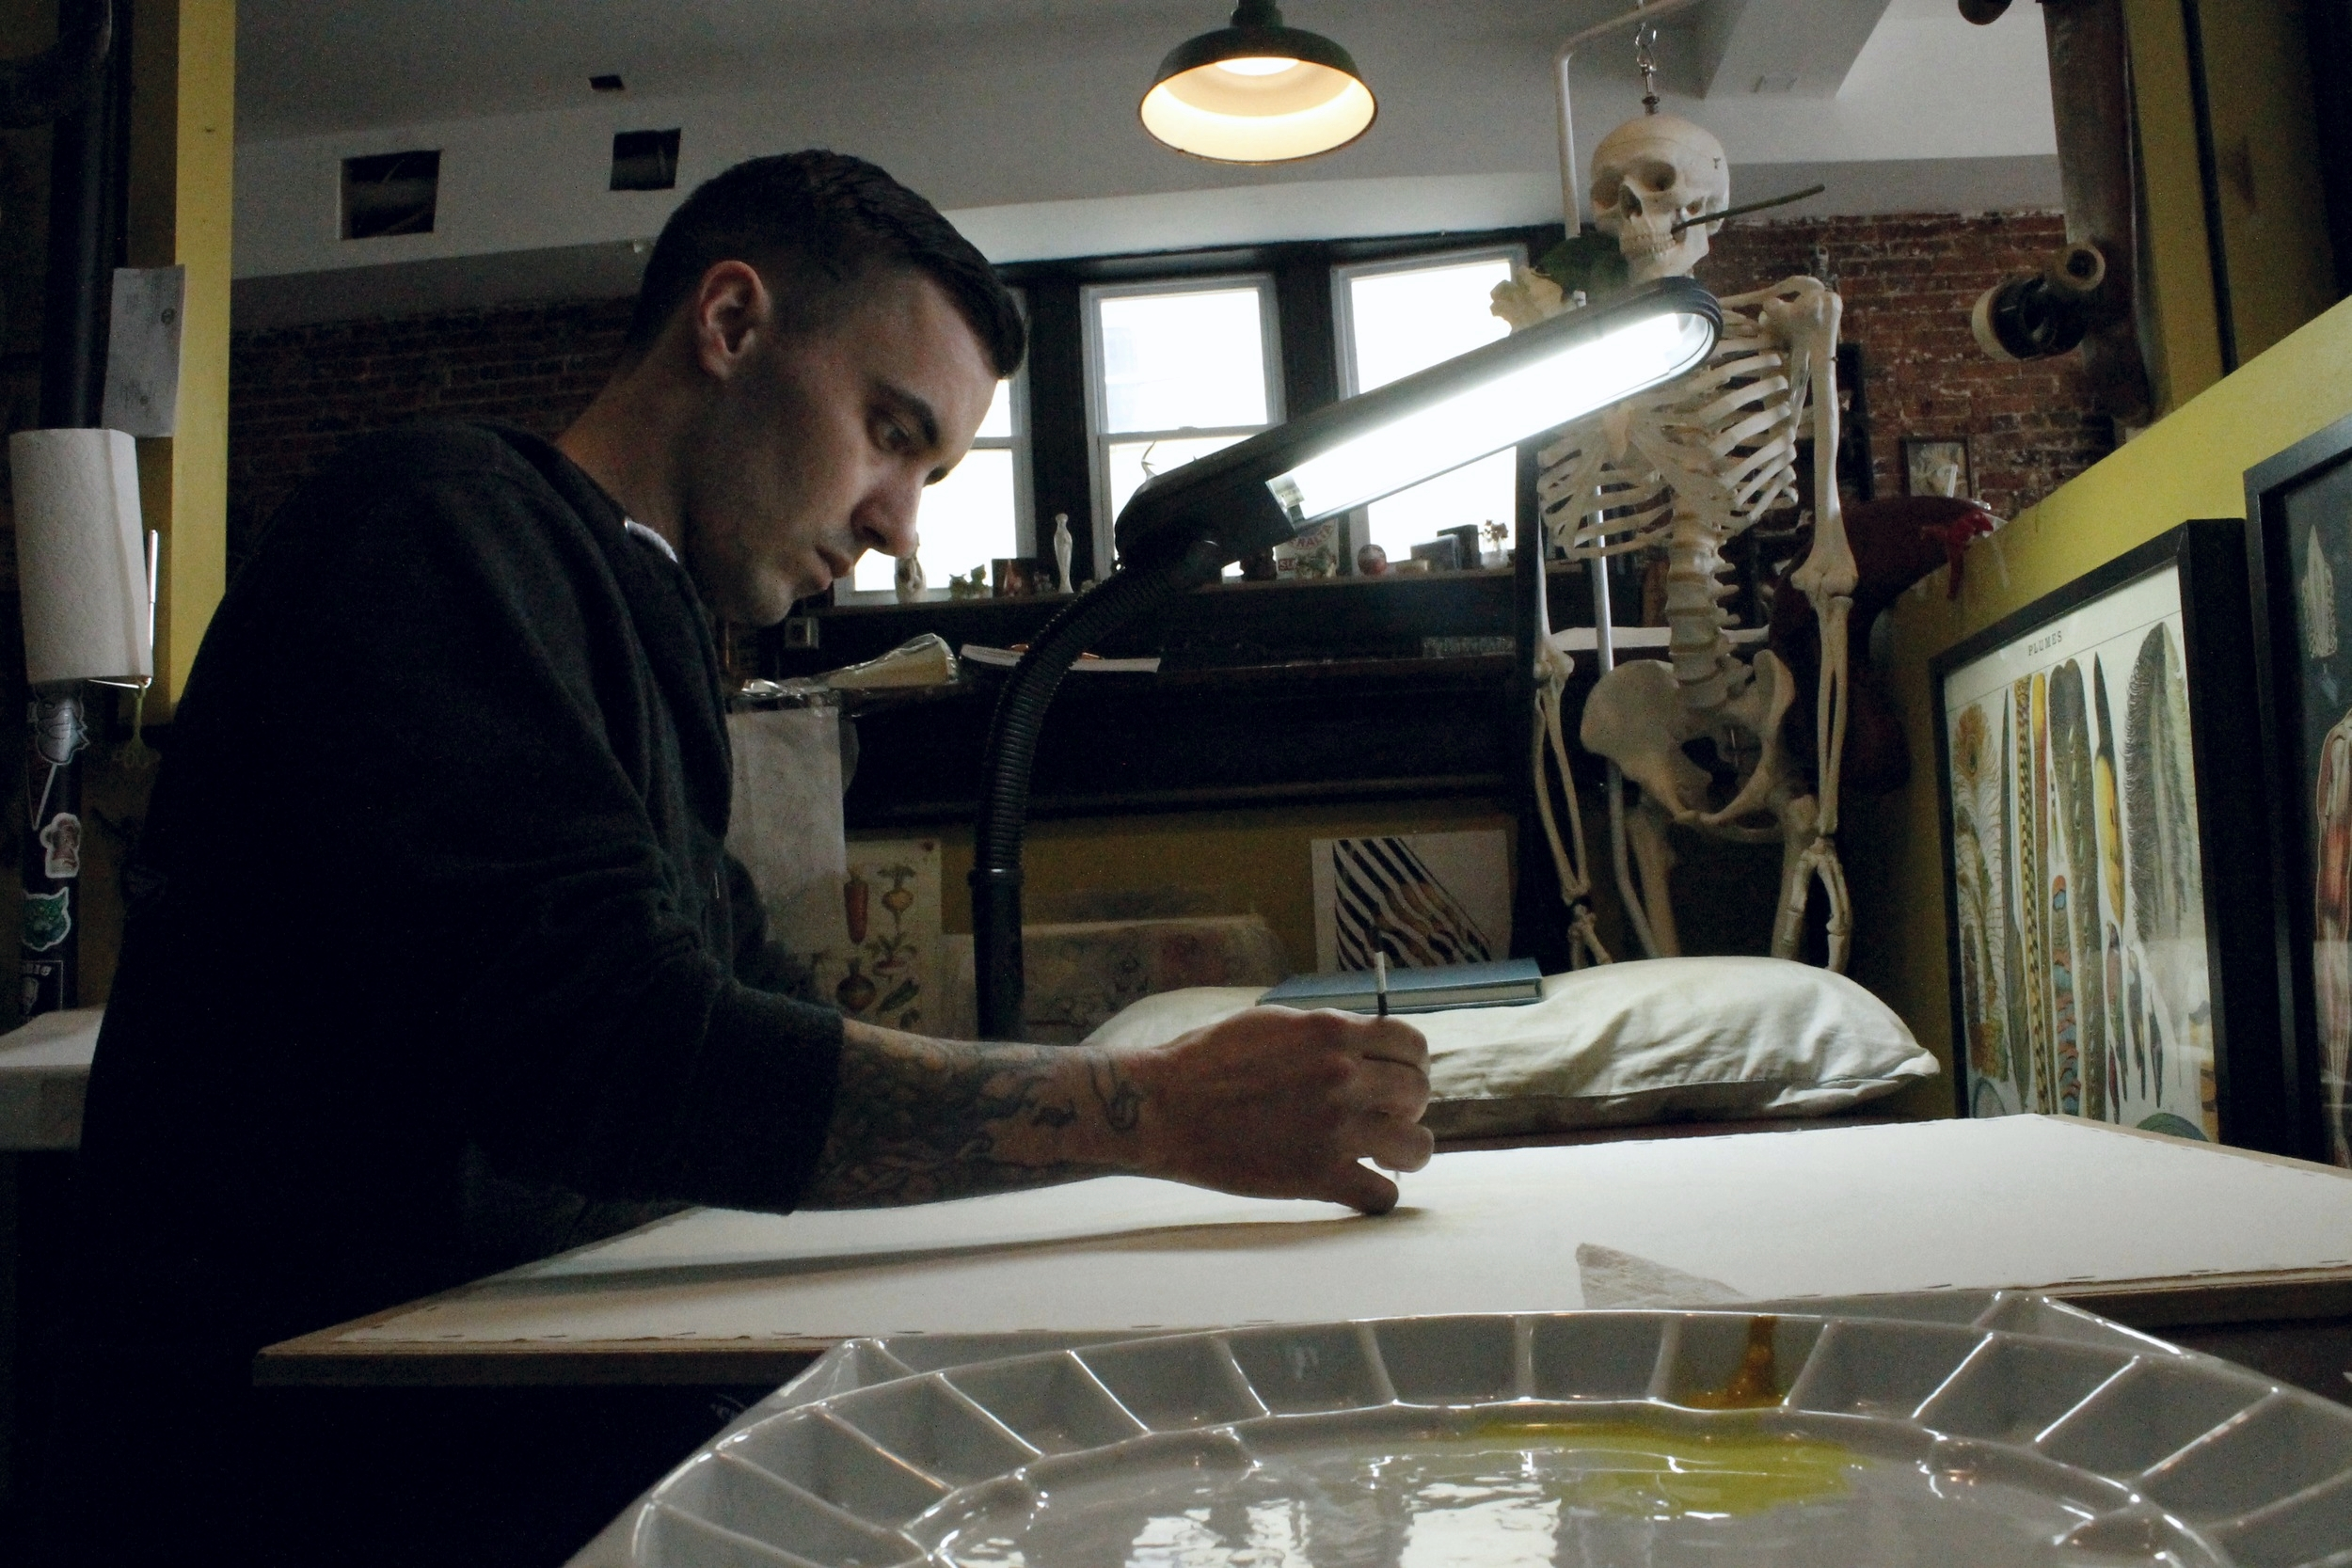 Wes working on his Dali watercolor painting.